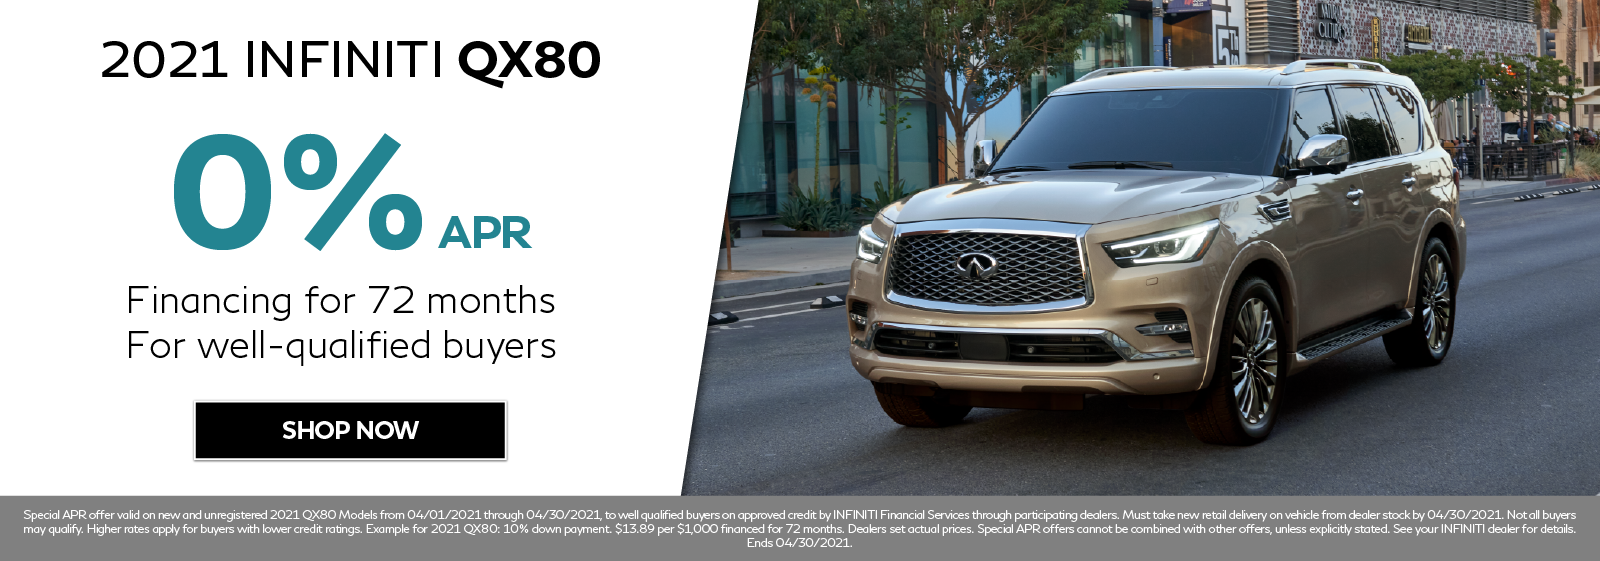 0% APR on new 2021 INFINITI QX80. Click to shop now.